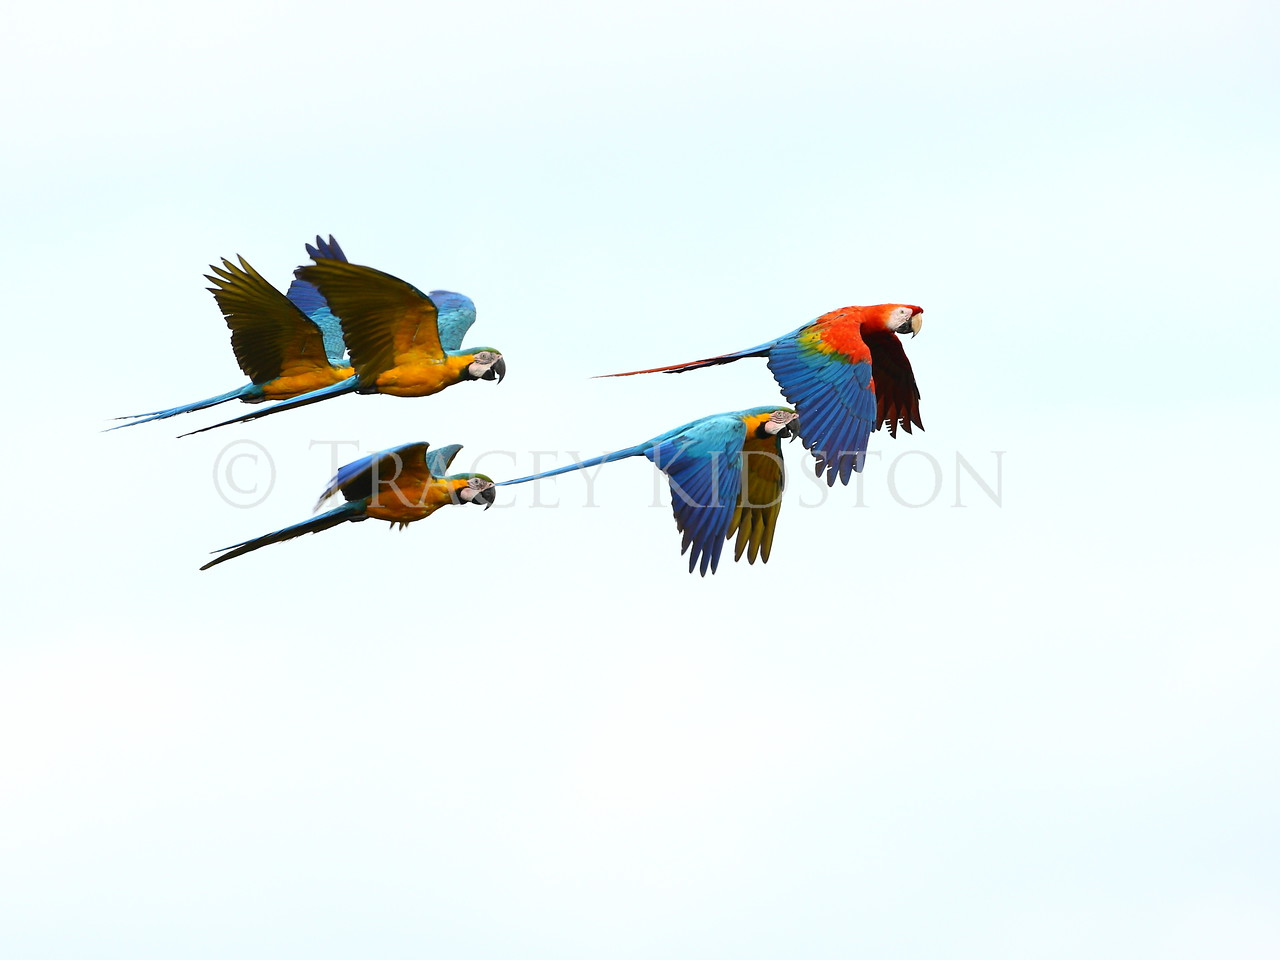 Blue and Yellow and Scarlet Macaws<br /> <br /> You may purchase a print or a digital download. If purchasing a digital download please look at the licensing agreement terms for personal or commercial use.<br />  <br /> There are two options available for this print. You may order any size you like through my site by clicking the buy tab in the upper right corner. In addition you may purchase directly from me a giclée print measuring 12x18 inches, mounted with a 3-inch mat and personally signed by me. The total cost including shipping within the United States is $225.00. <br /> 50% of all sales proceeds in this gallery will be donated directly to the Tambopata Macaw Project.<br />  <br /> To order a print please contact me directly at 253-820-5223 or email me at info@traceykidstonphotography.com.<br />  <br /> For further information on the important research that the Tambopata Macaw Project is doing in Peru, please visit my links page.